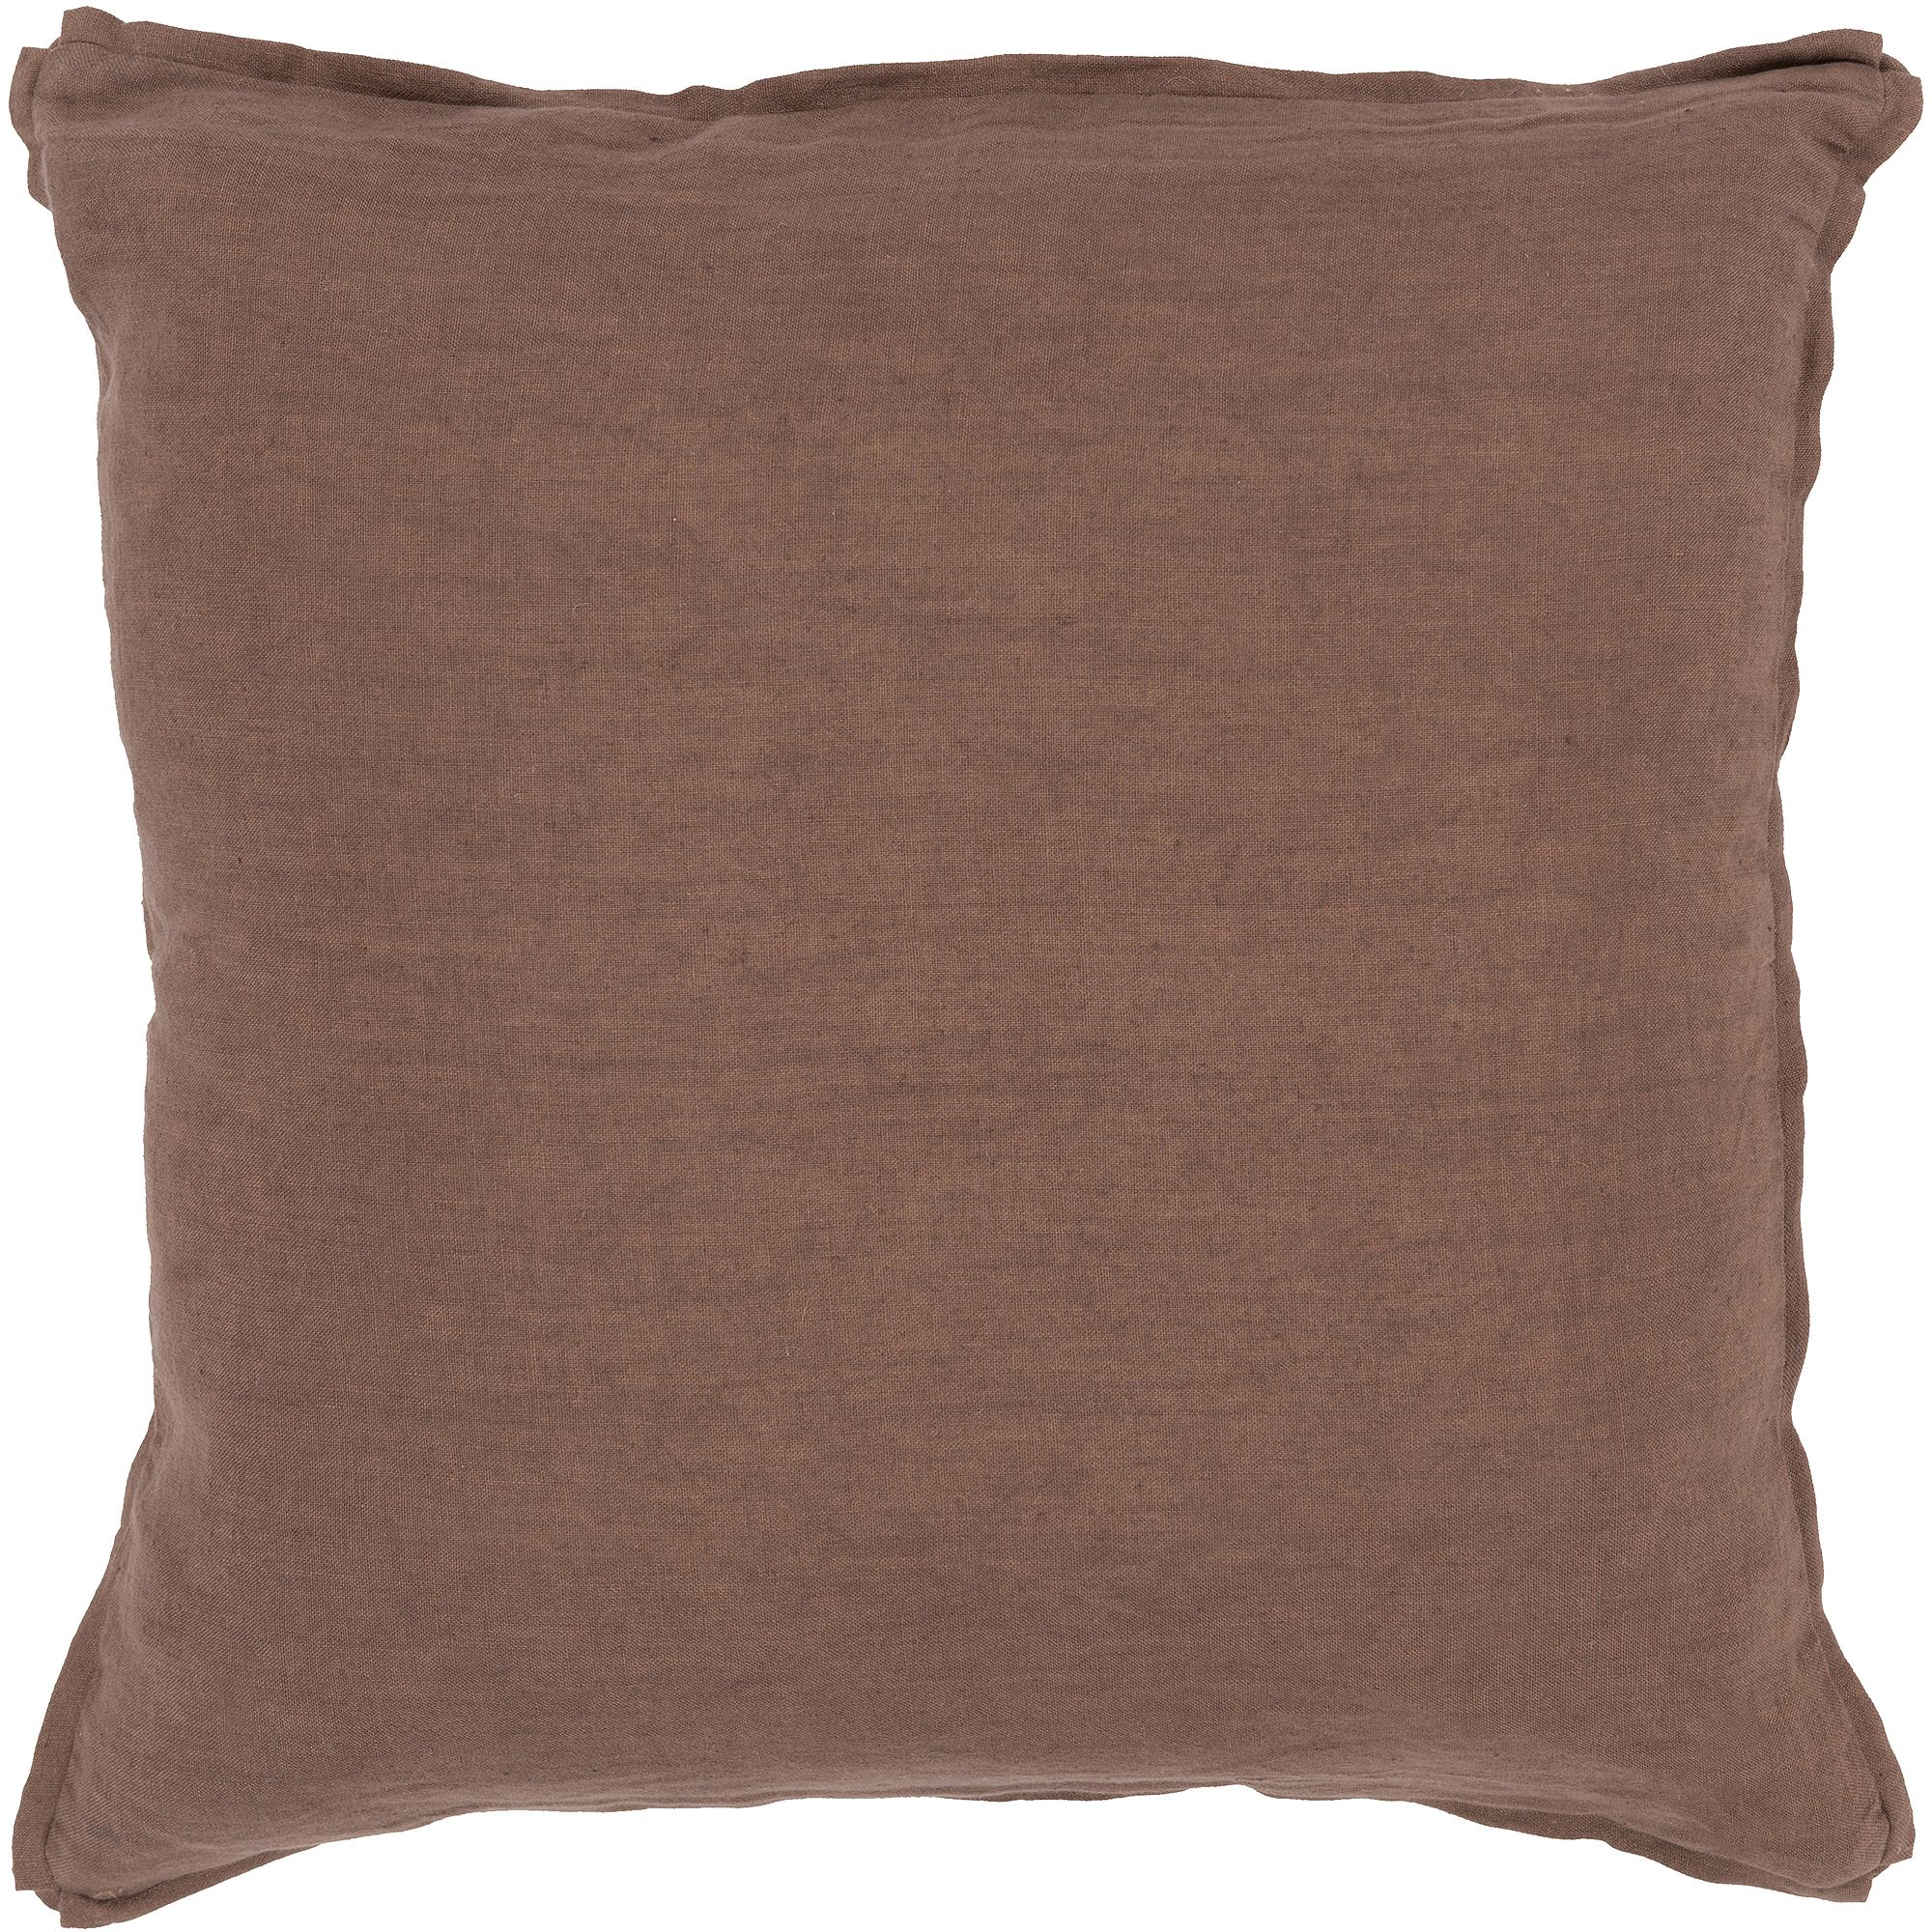 """Art of Knot Luxe Hand Crafted Linen Fancy Flange Decorative Pillow with Poly Filler, 18"""" x 18"""", Beige"""